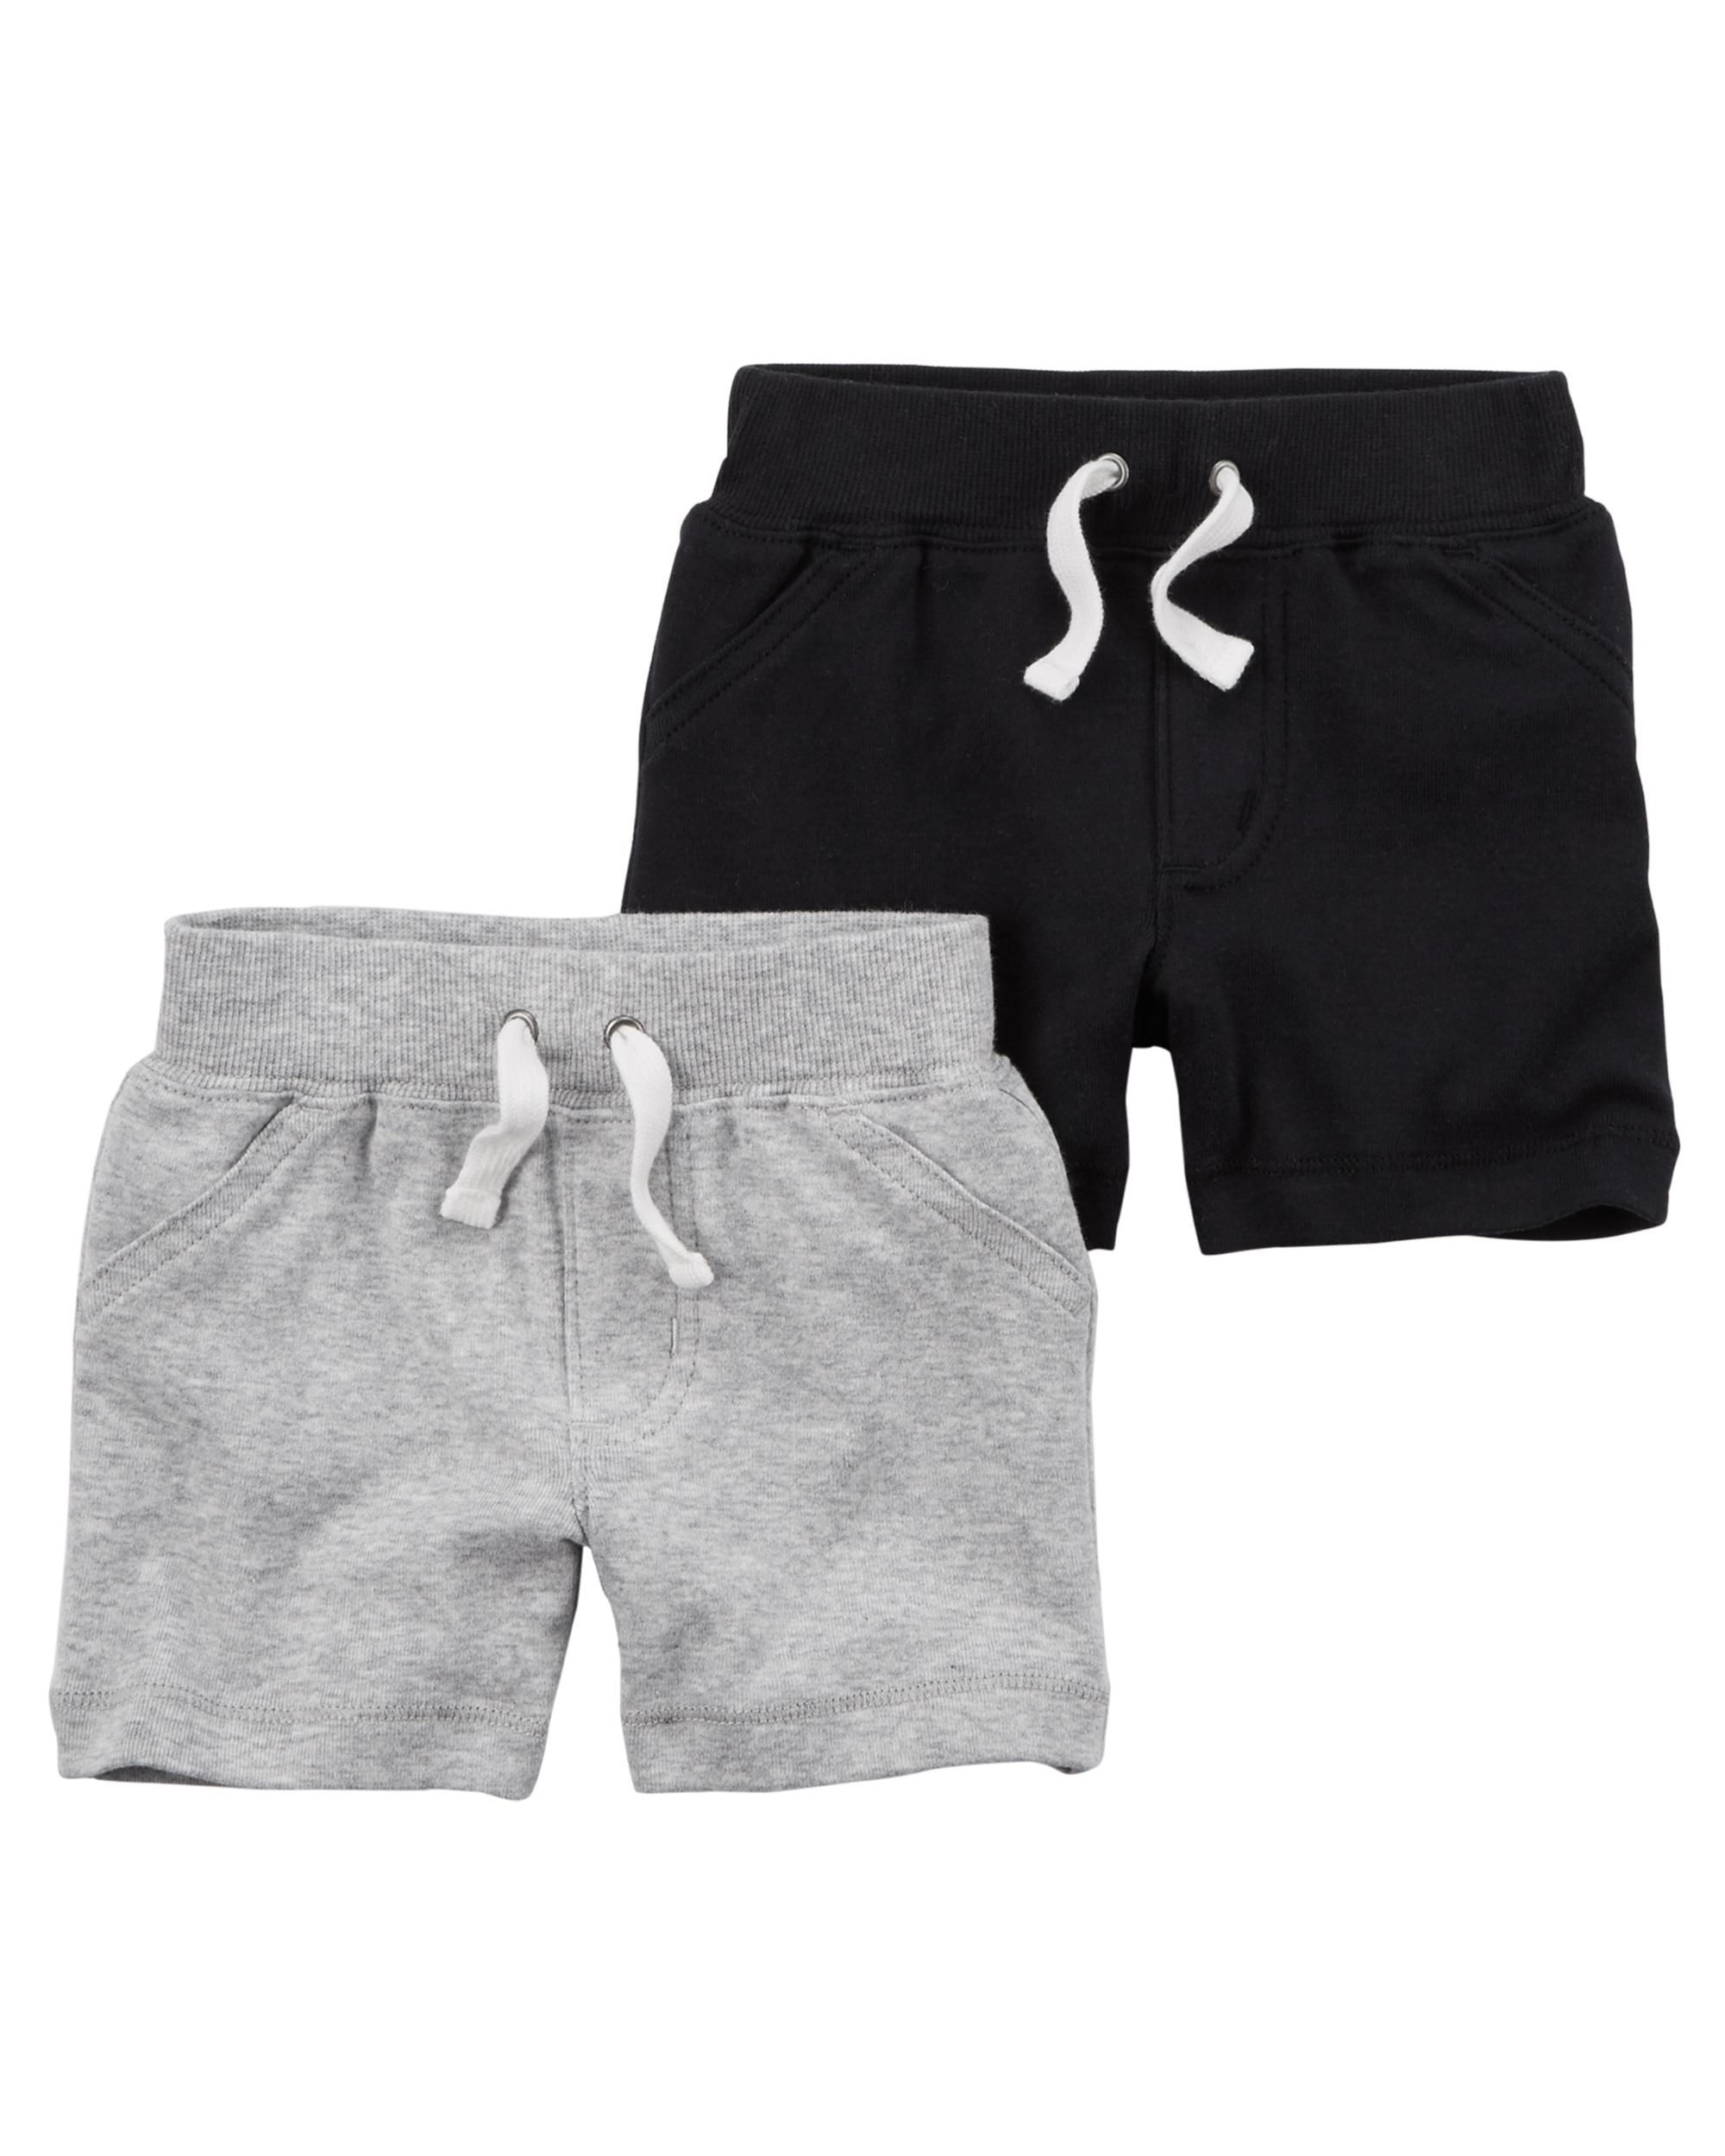 Carters Baby Boys 2-Pack Shorts